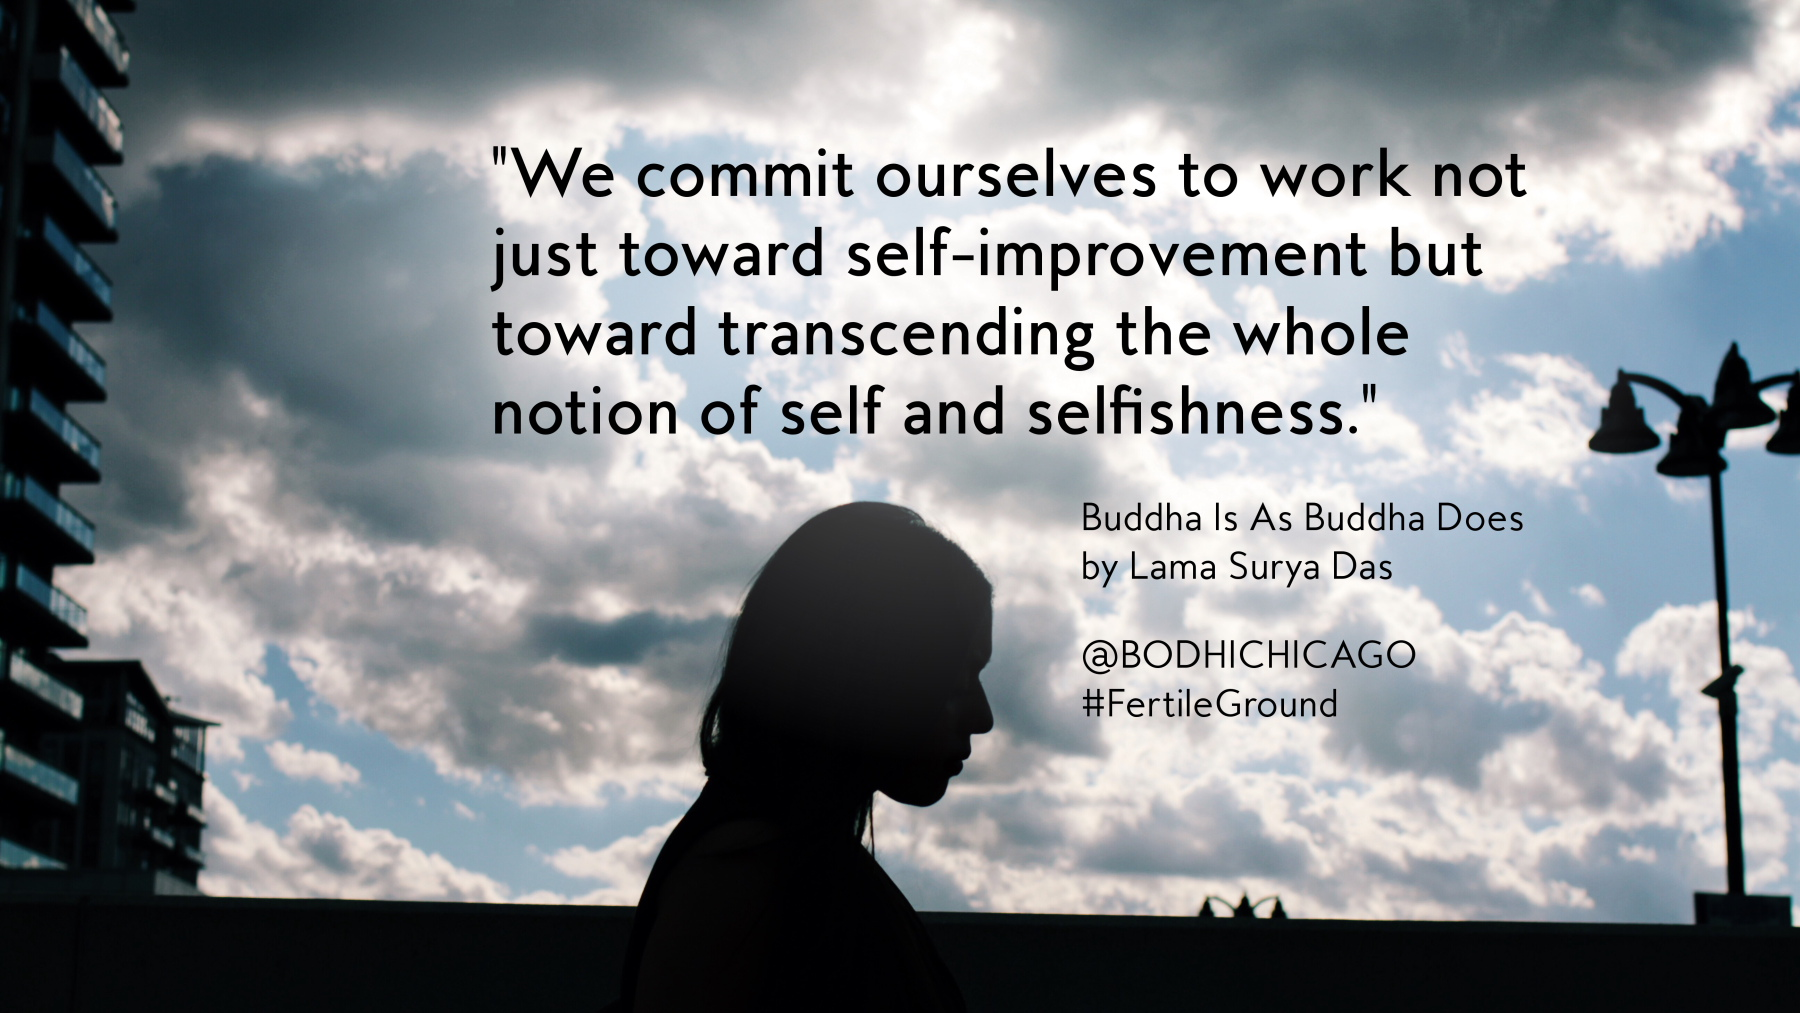 Wednesday Wisdom Quote Lama Surya Das On Transcending Self Bodhi